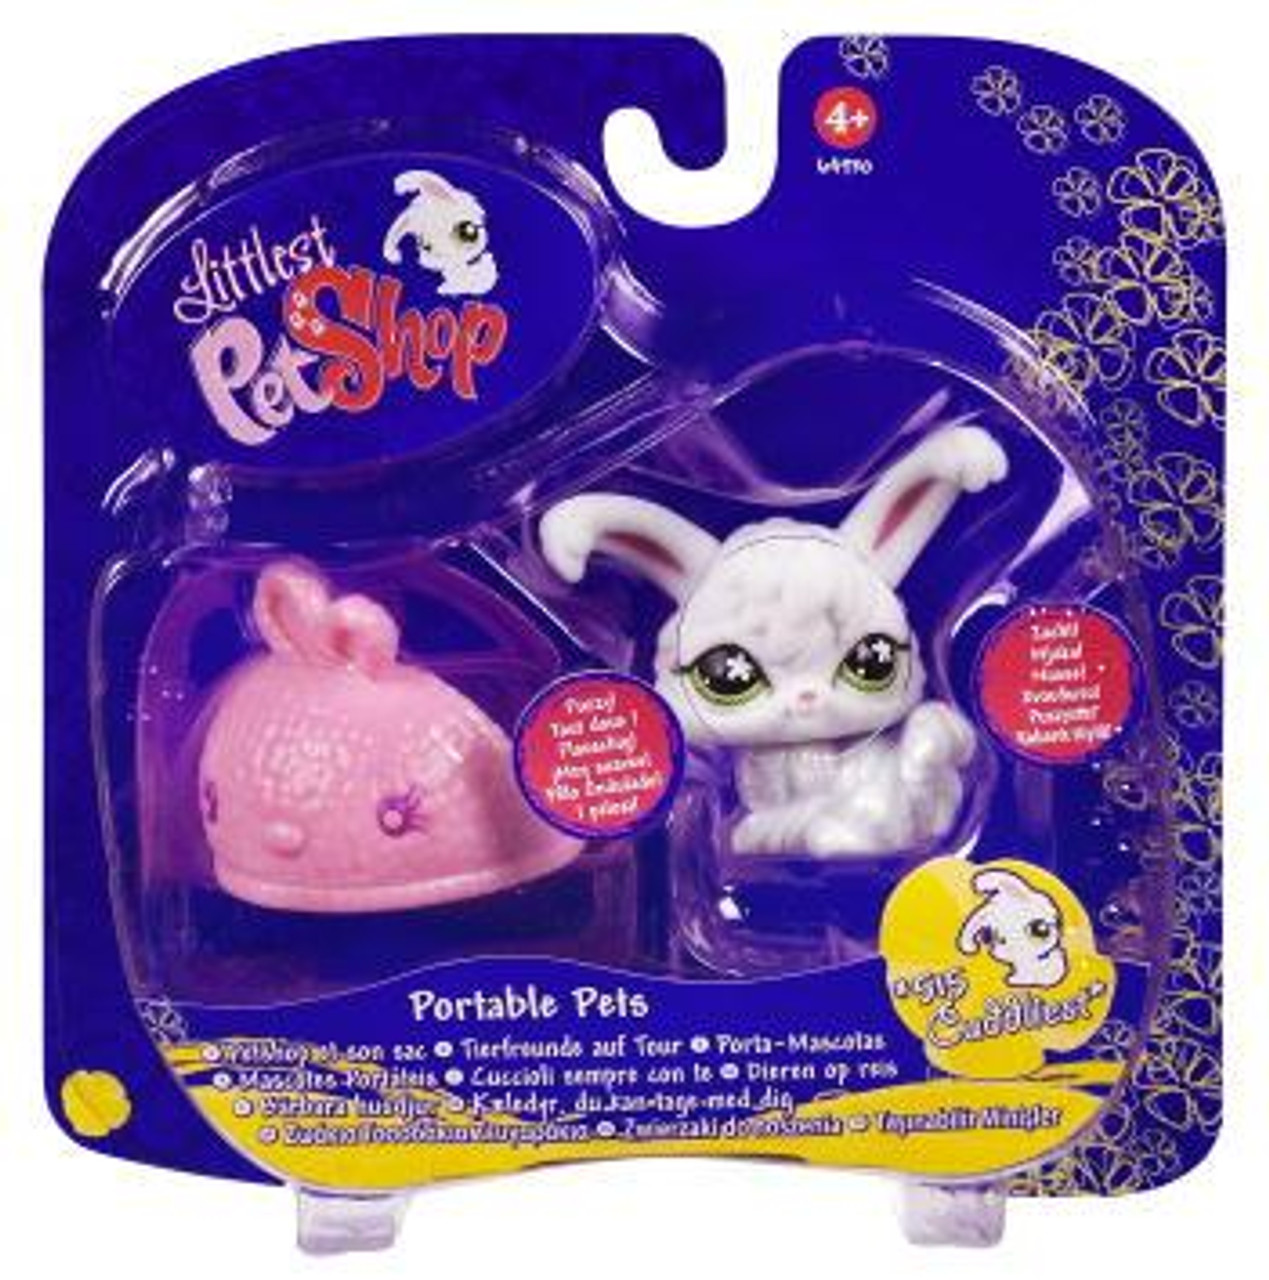 Littlest Pet Shop Portable Pets Angora Bunny Figure #515 [With Slipper]